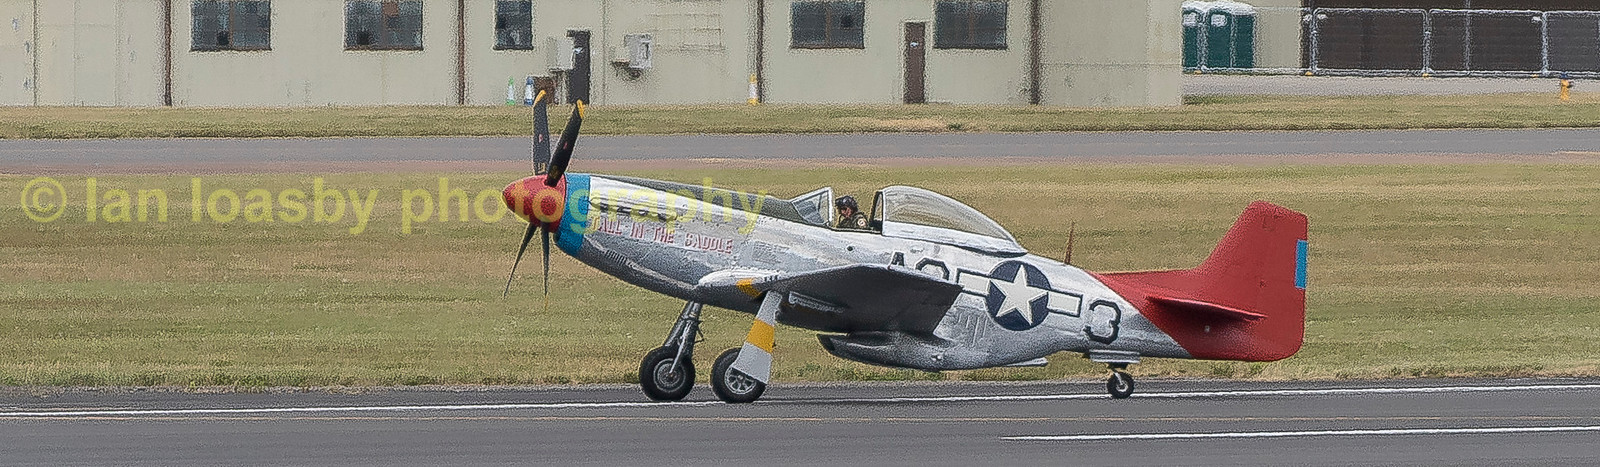 North American P-51 Mustang A3-3 from the Hanger 11 Collection